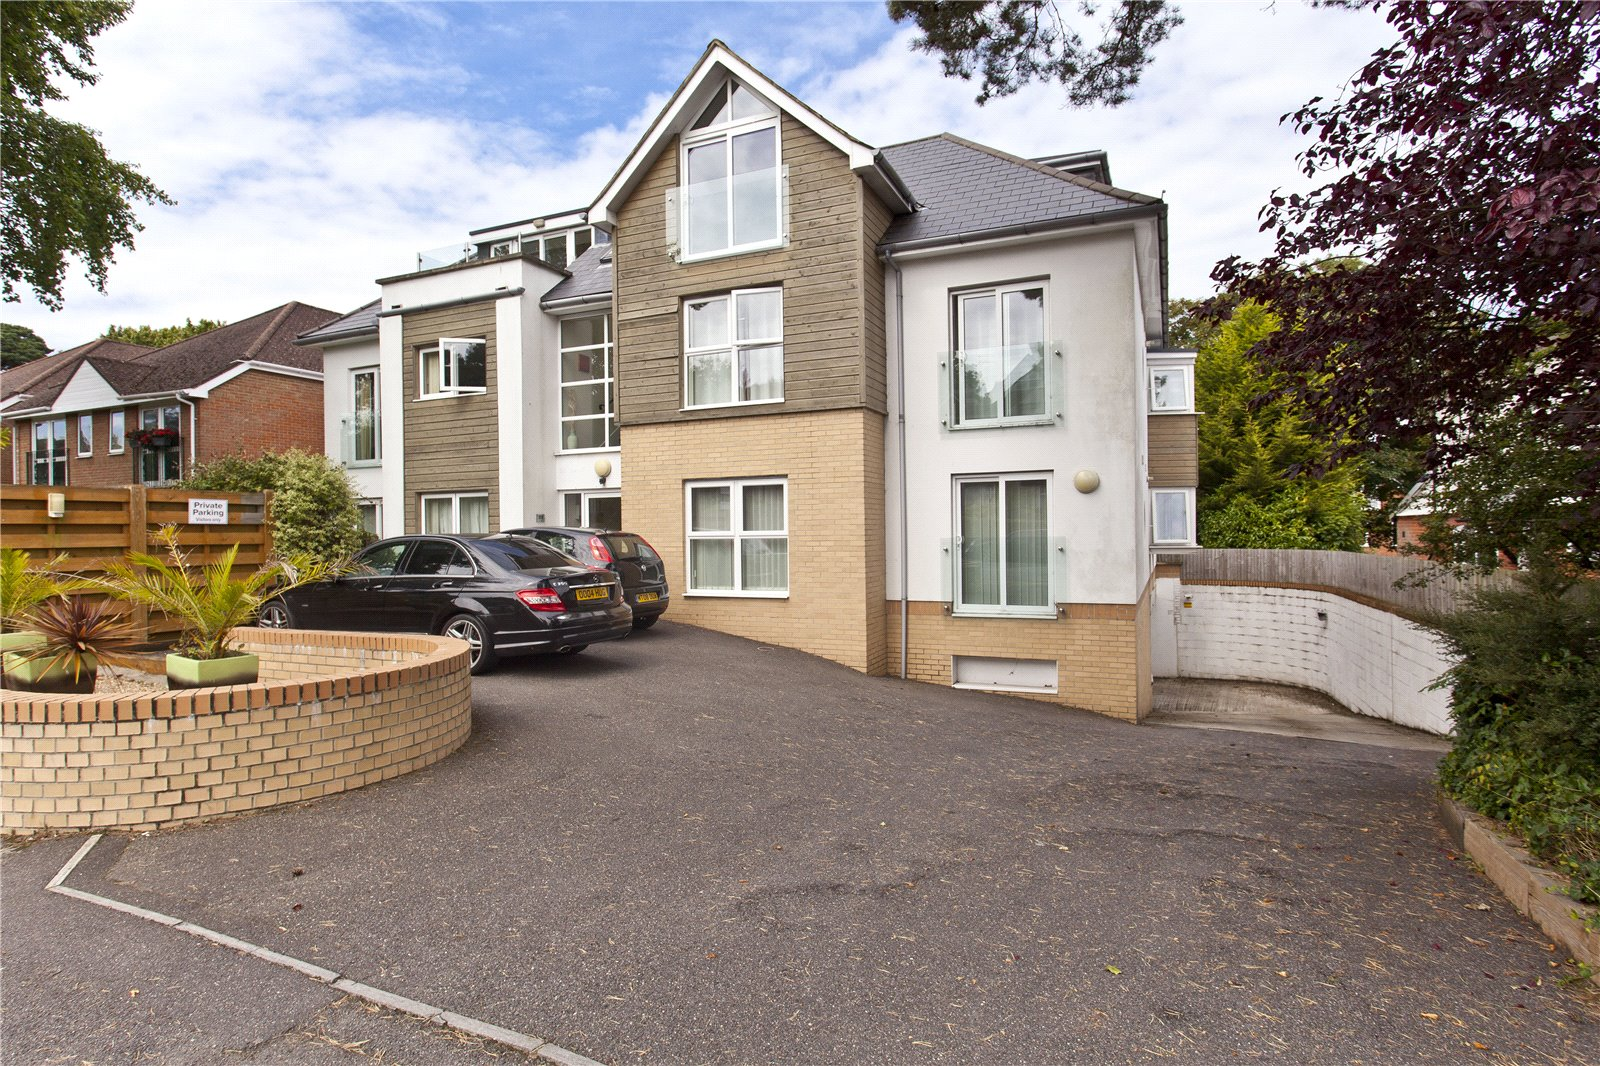 2 bed apartment to rent in Penn Hill Avenue, Poole 0